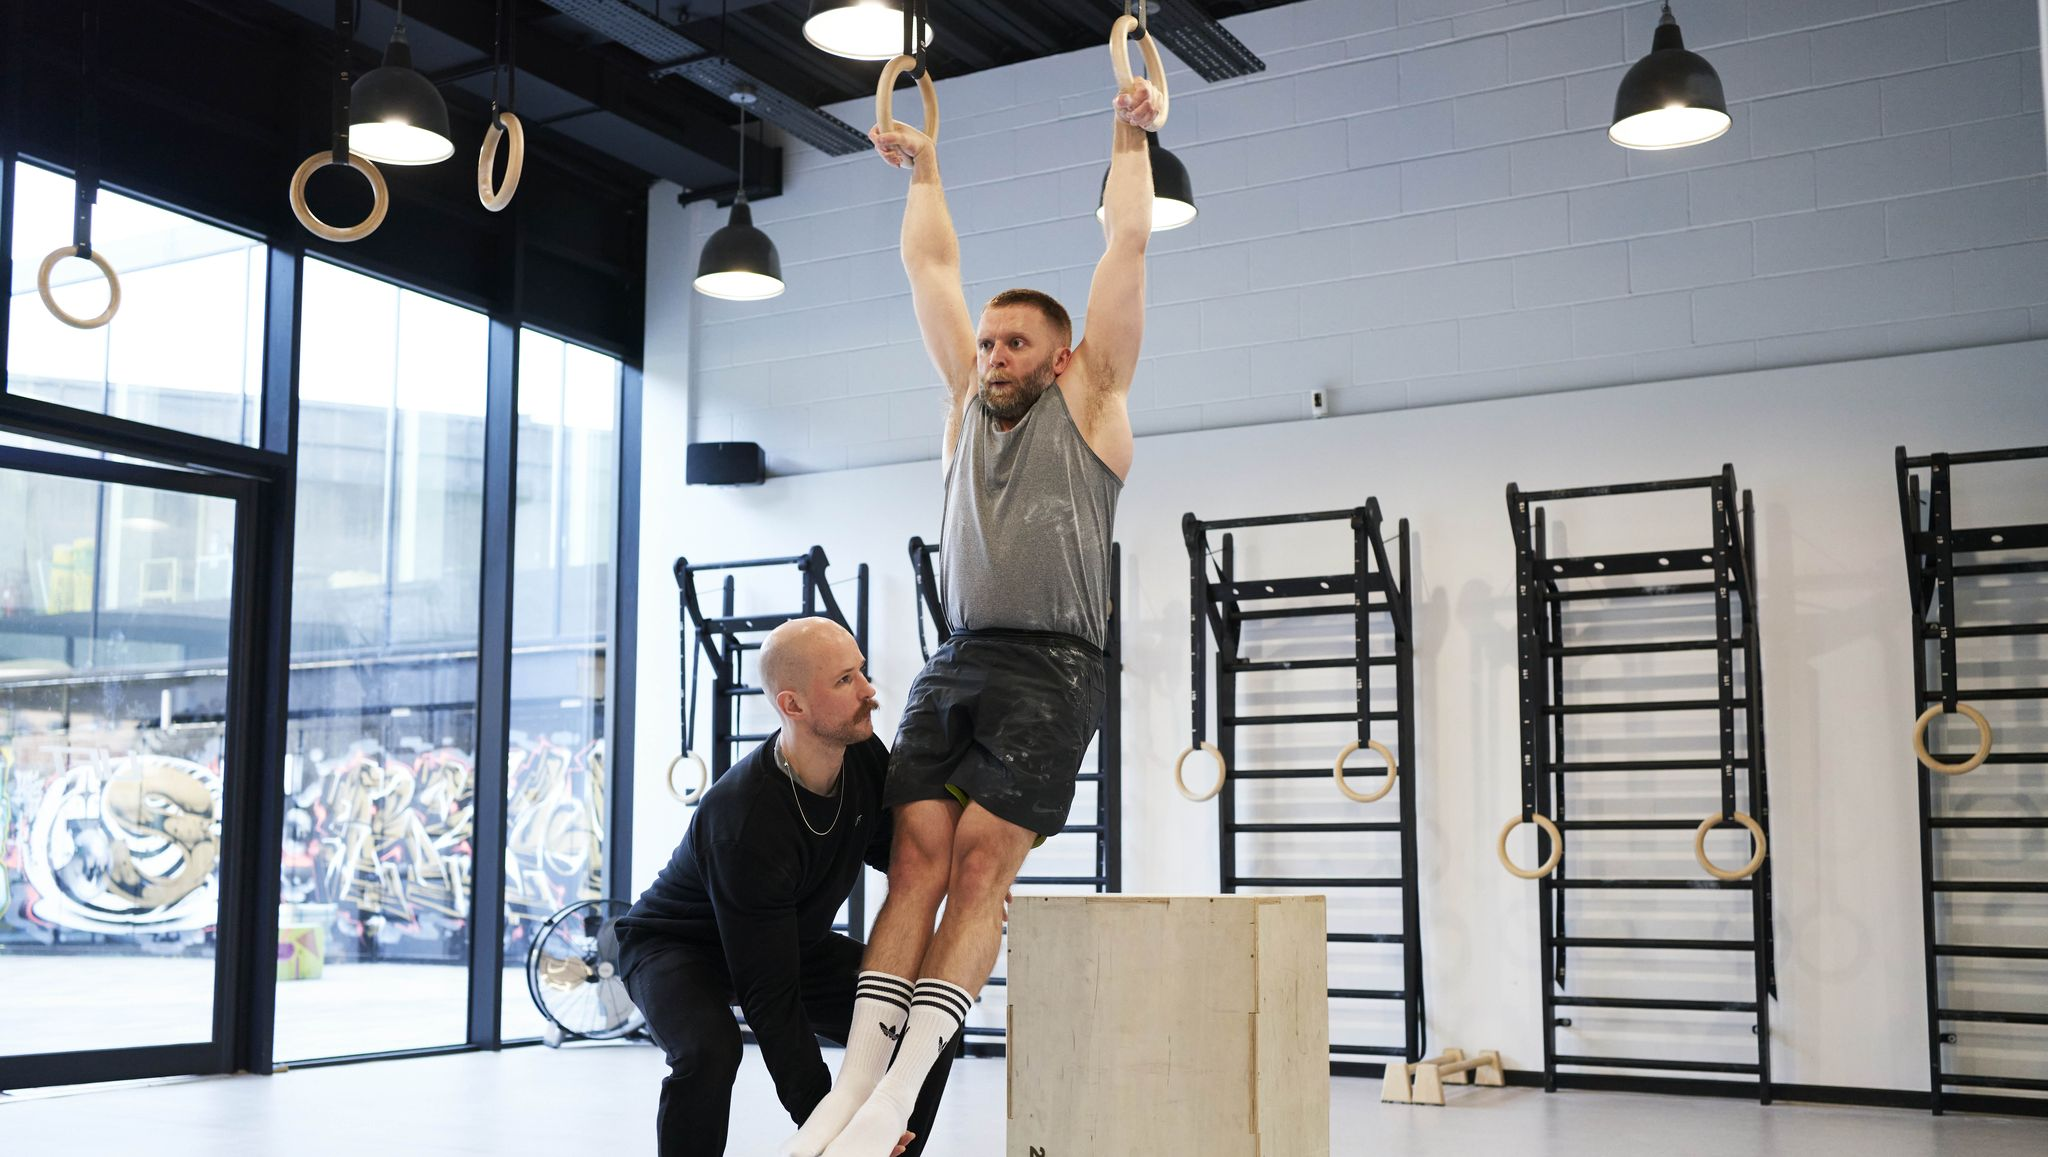 'I Tried to Learn How to Do a Muscle-Up in Just 4 Weeks. Here's What Happened'